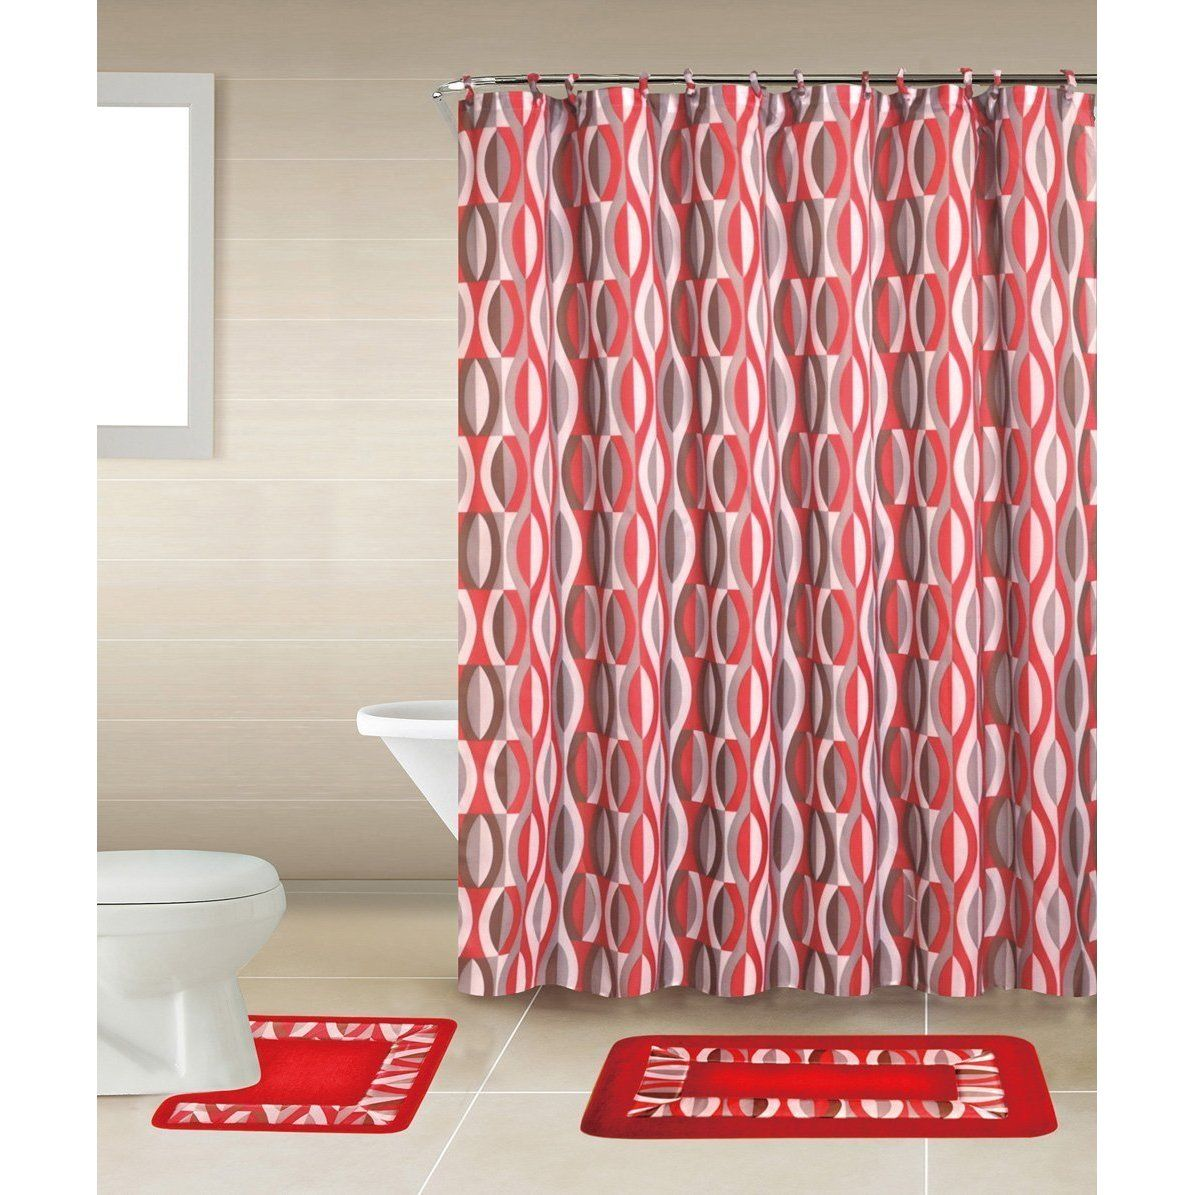 Home dynamix bath boutique shower curtain and bath rug set rugs